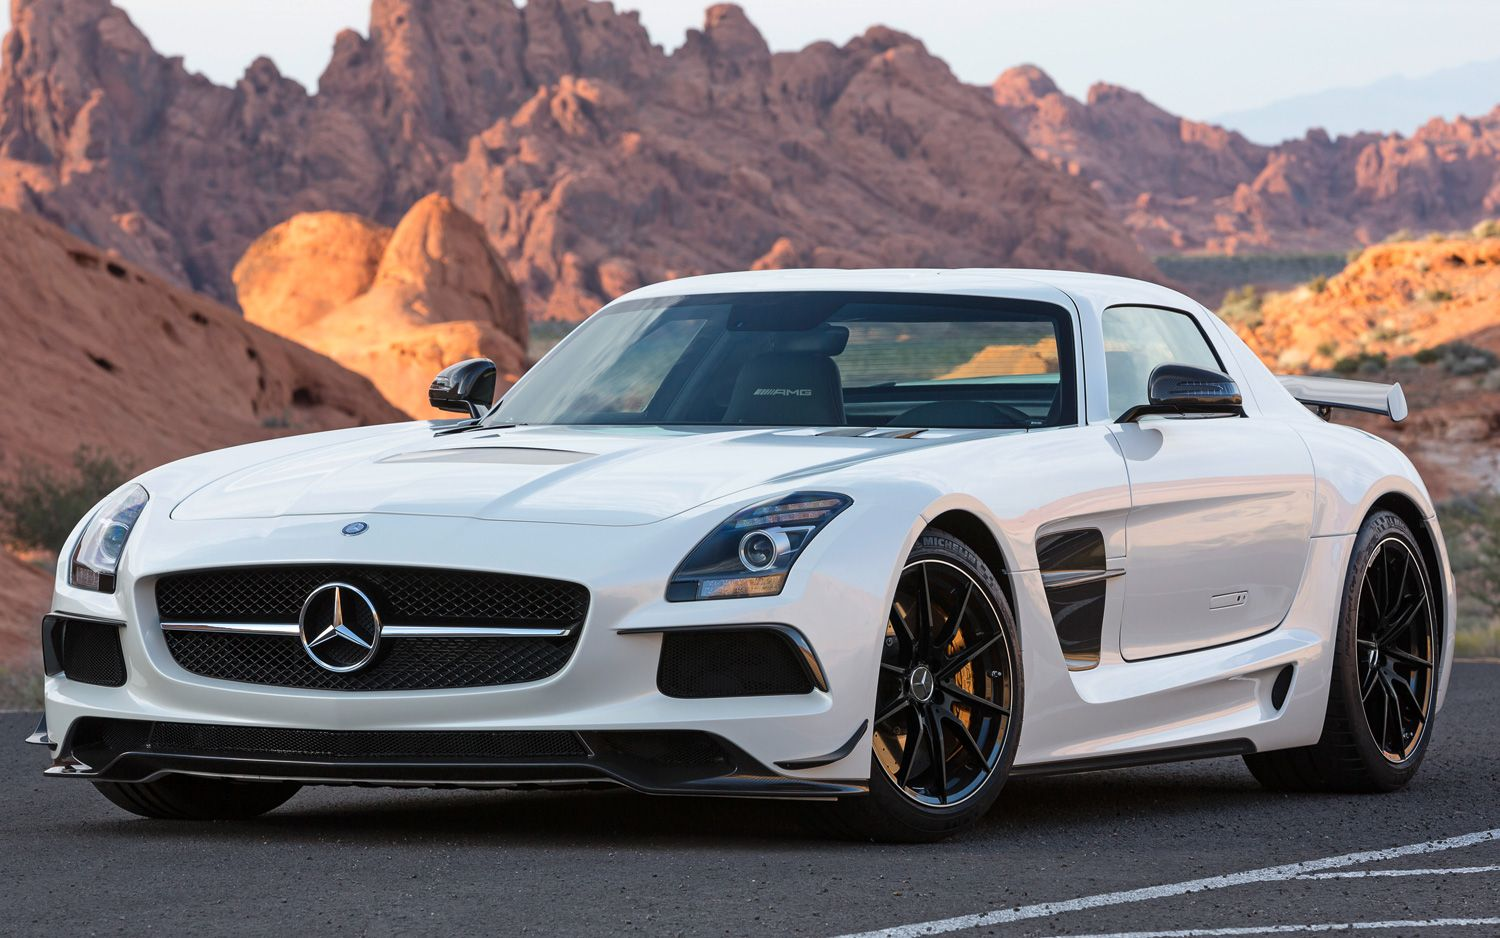 mercedes amg presents the high end super sports car version of the gull